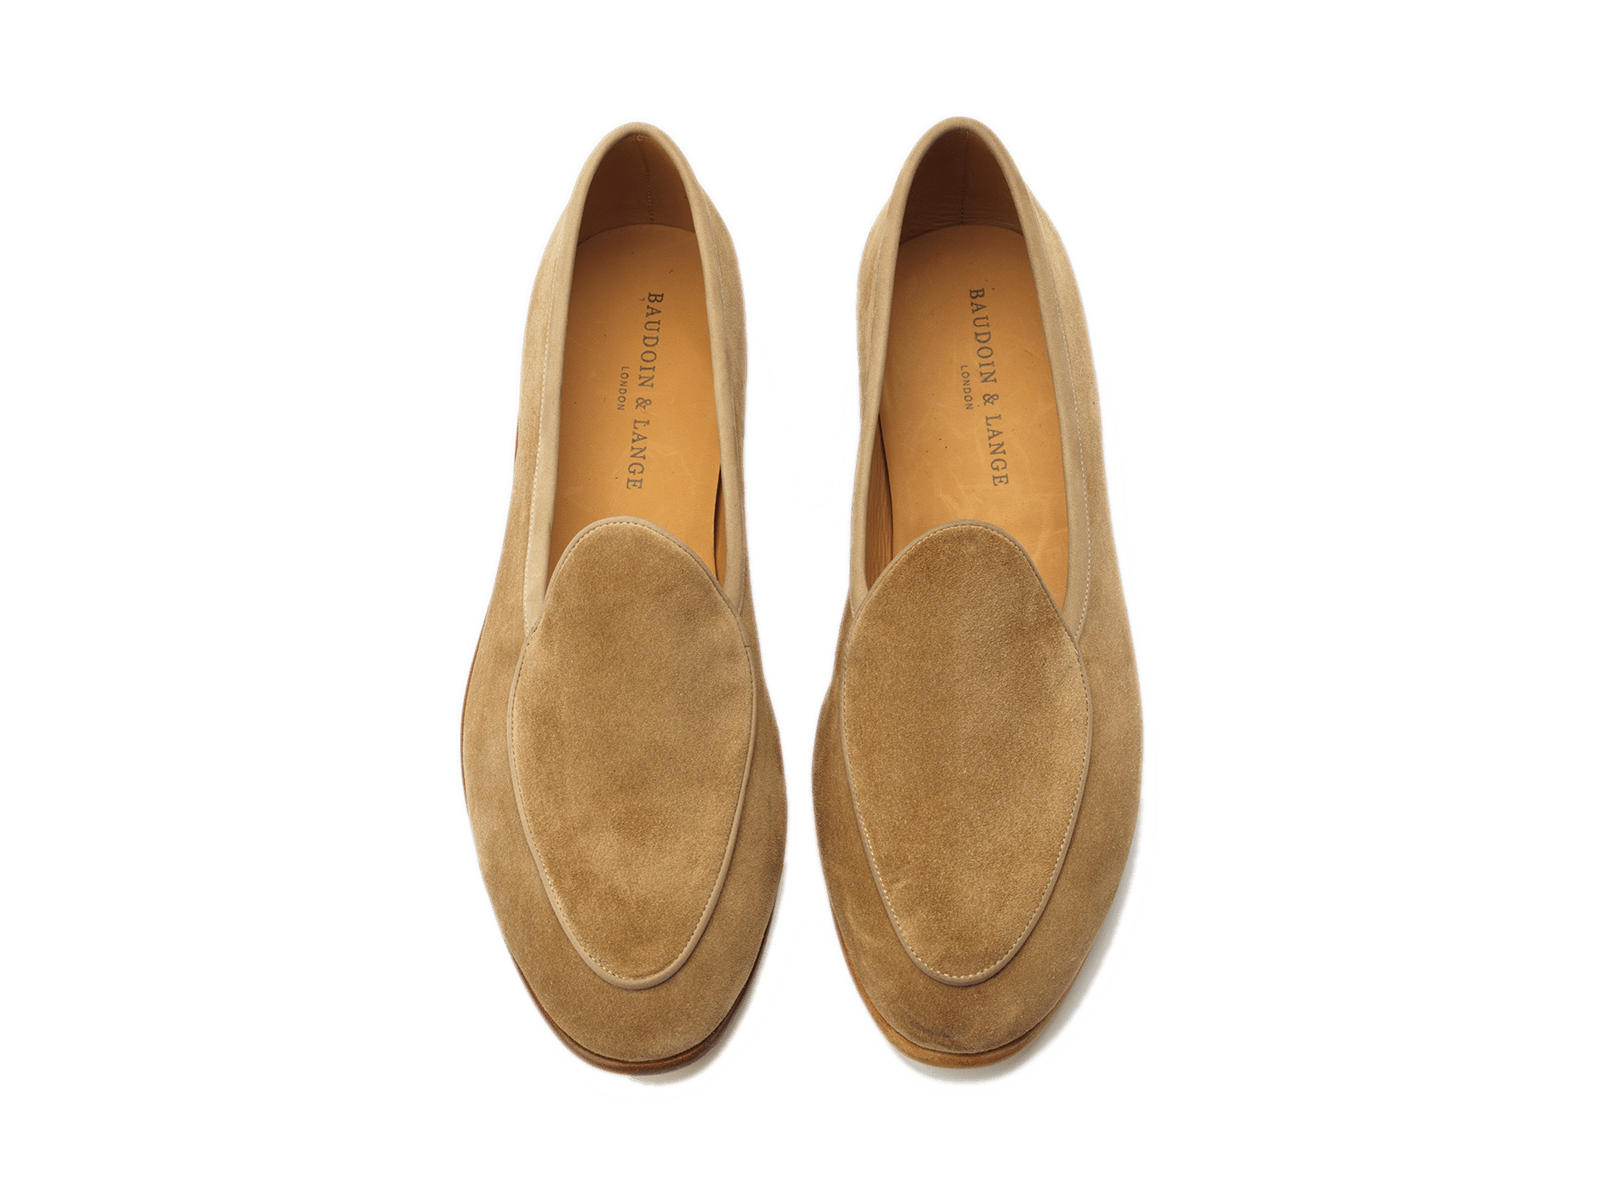 Sagan Classic Vence in Clay Glove Suede